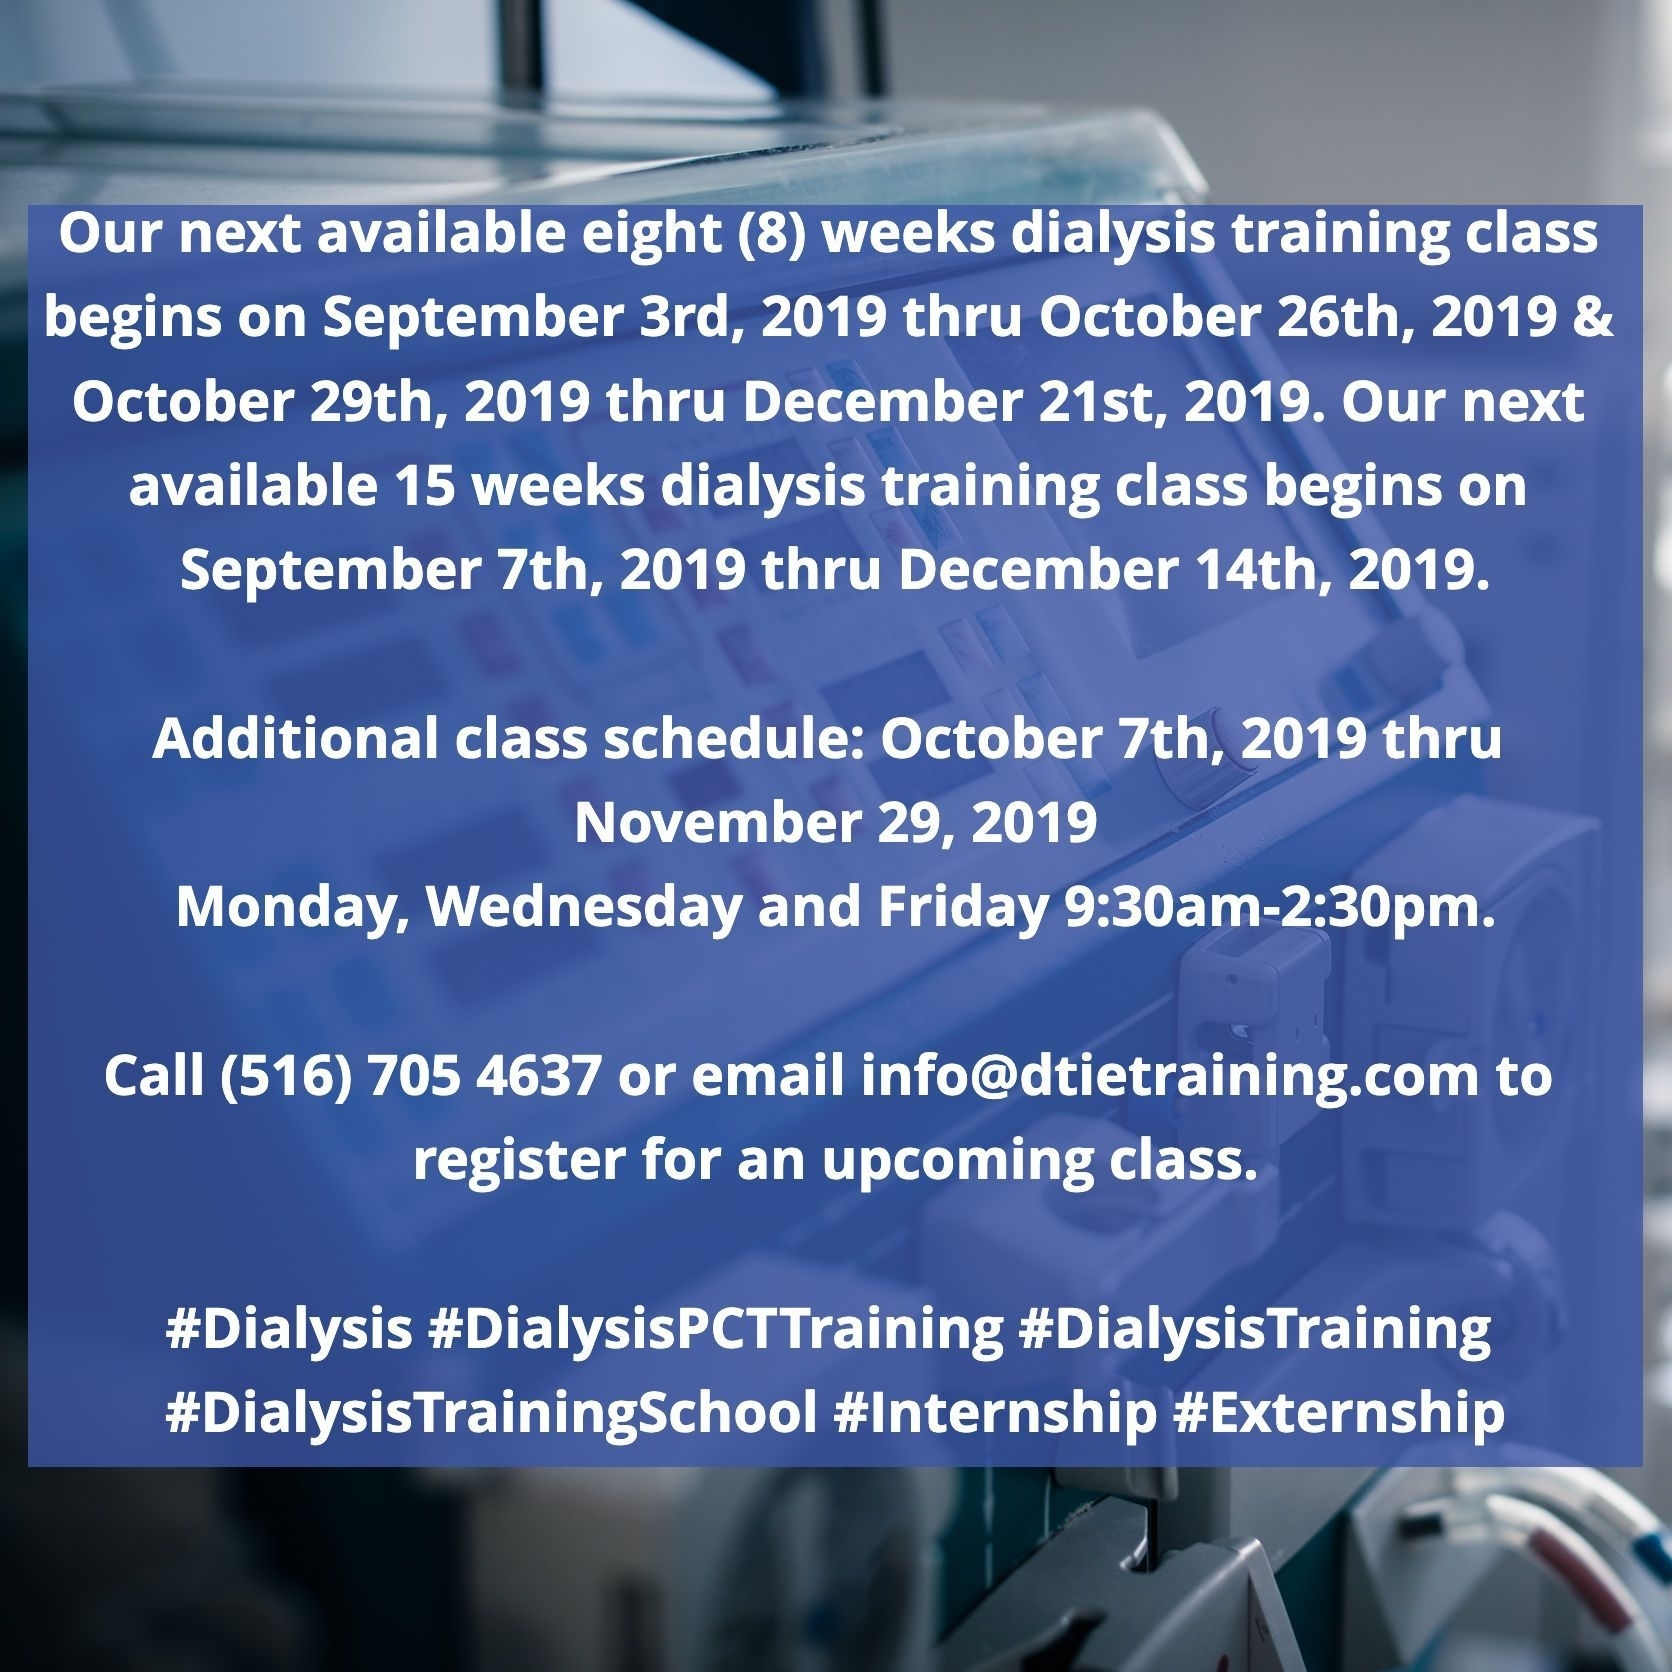 Our Next Available Eight (8) Weeks Dialysis Training Class